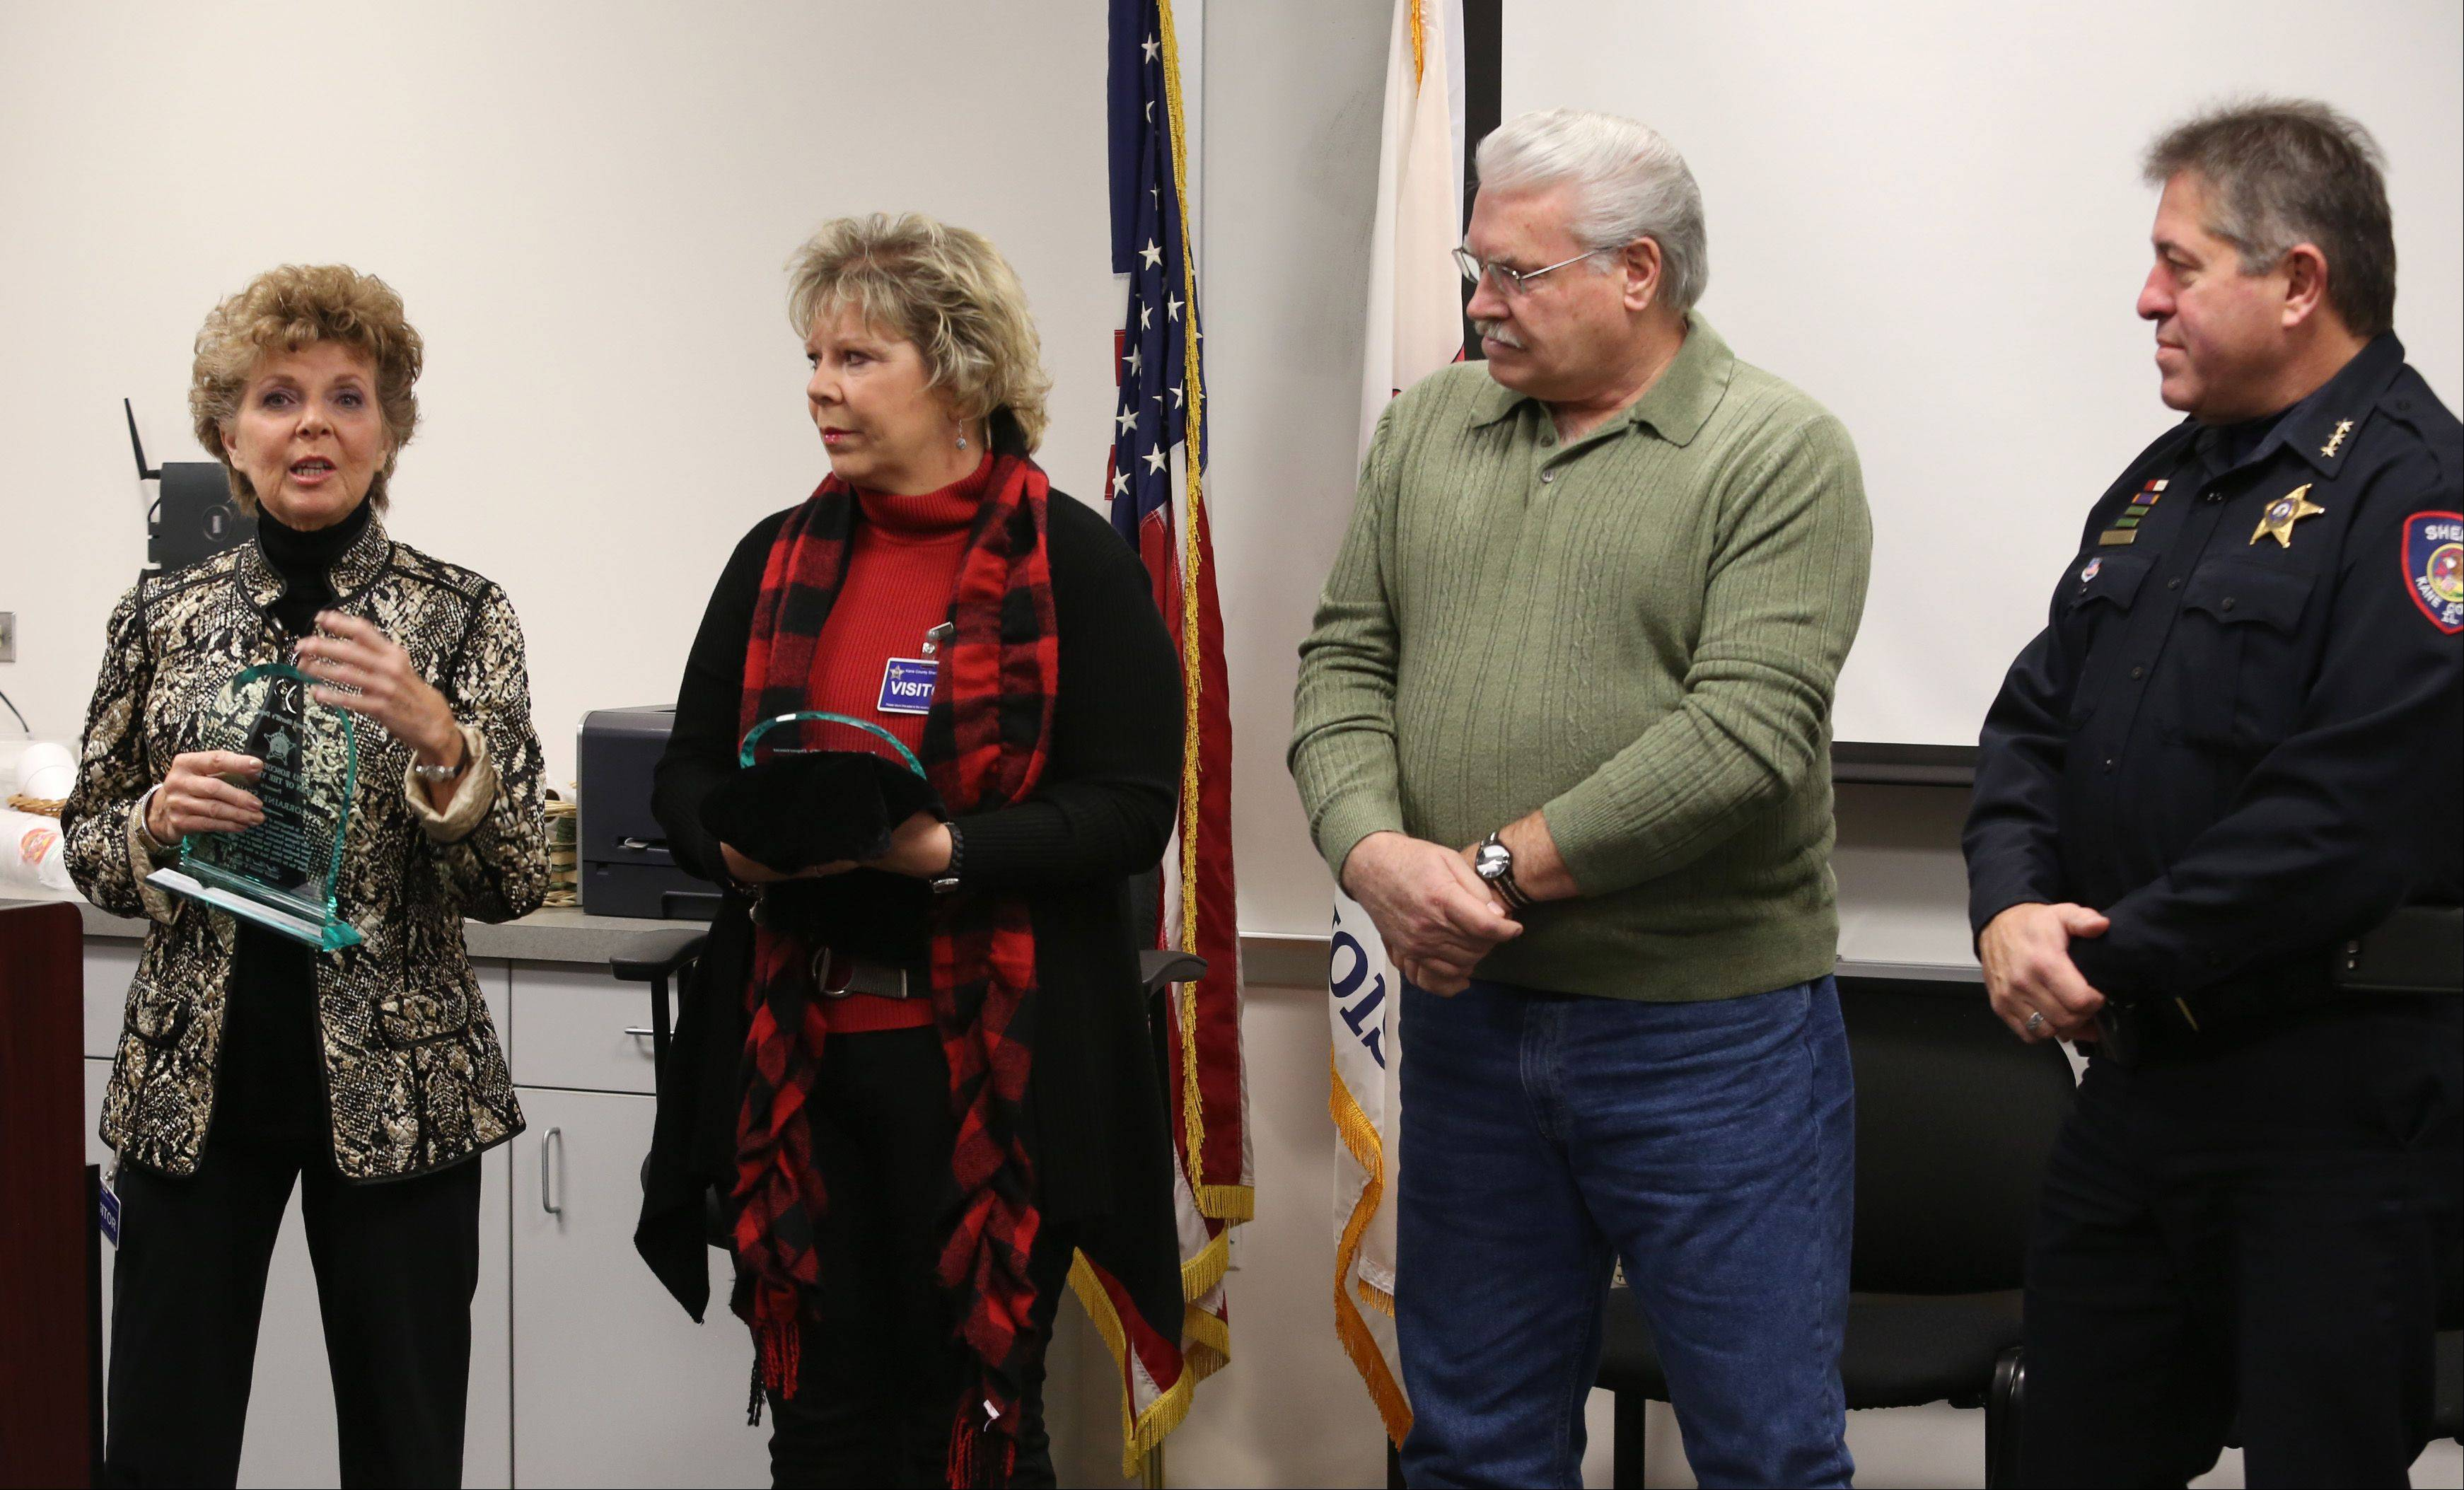 Roscoe Ebey Citizen of the Year co-recipients Lorraine Stahl, far left, and Christine Propheter are flanked by Richard Ebey, son of the award's namesake, and Kane County Sheriff Pat Perez during a ceremony Thursday in St. Charles. Lea Minalga of St. Charles also shared in the award.